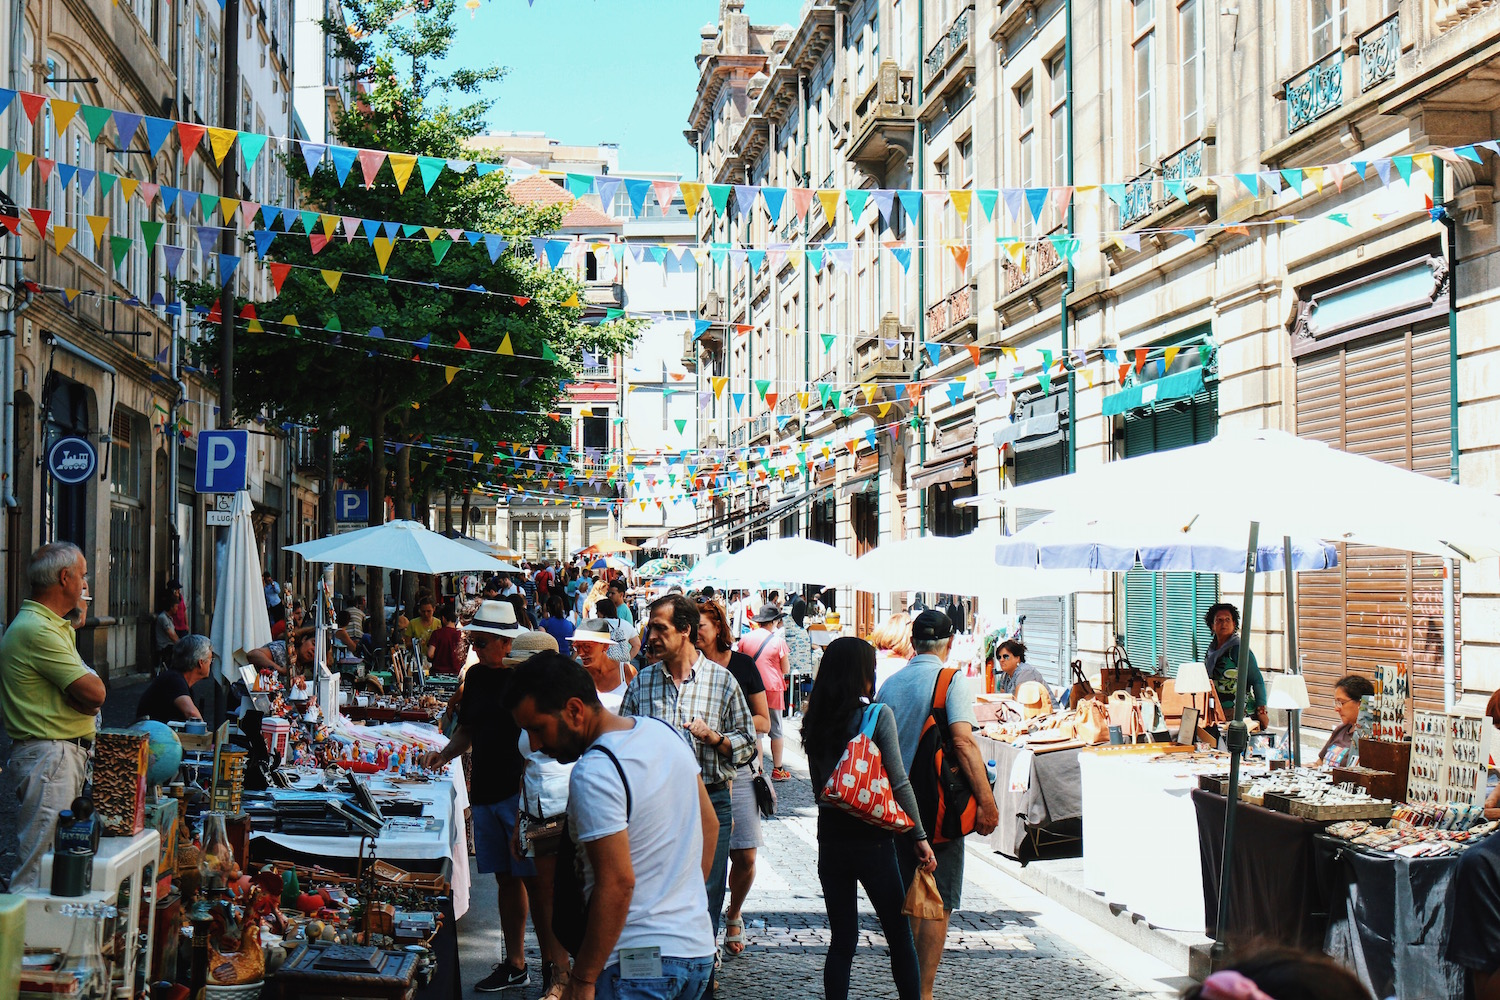 ravel-Diary_A-Long-Weekend-In-Porto_by-Meanwhile-in-Awesometown_Mens-Fashion-and-Lifestyle-Blog-from-Austria_Porto-Street-Markets